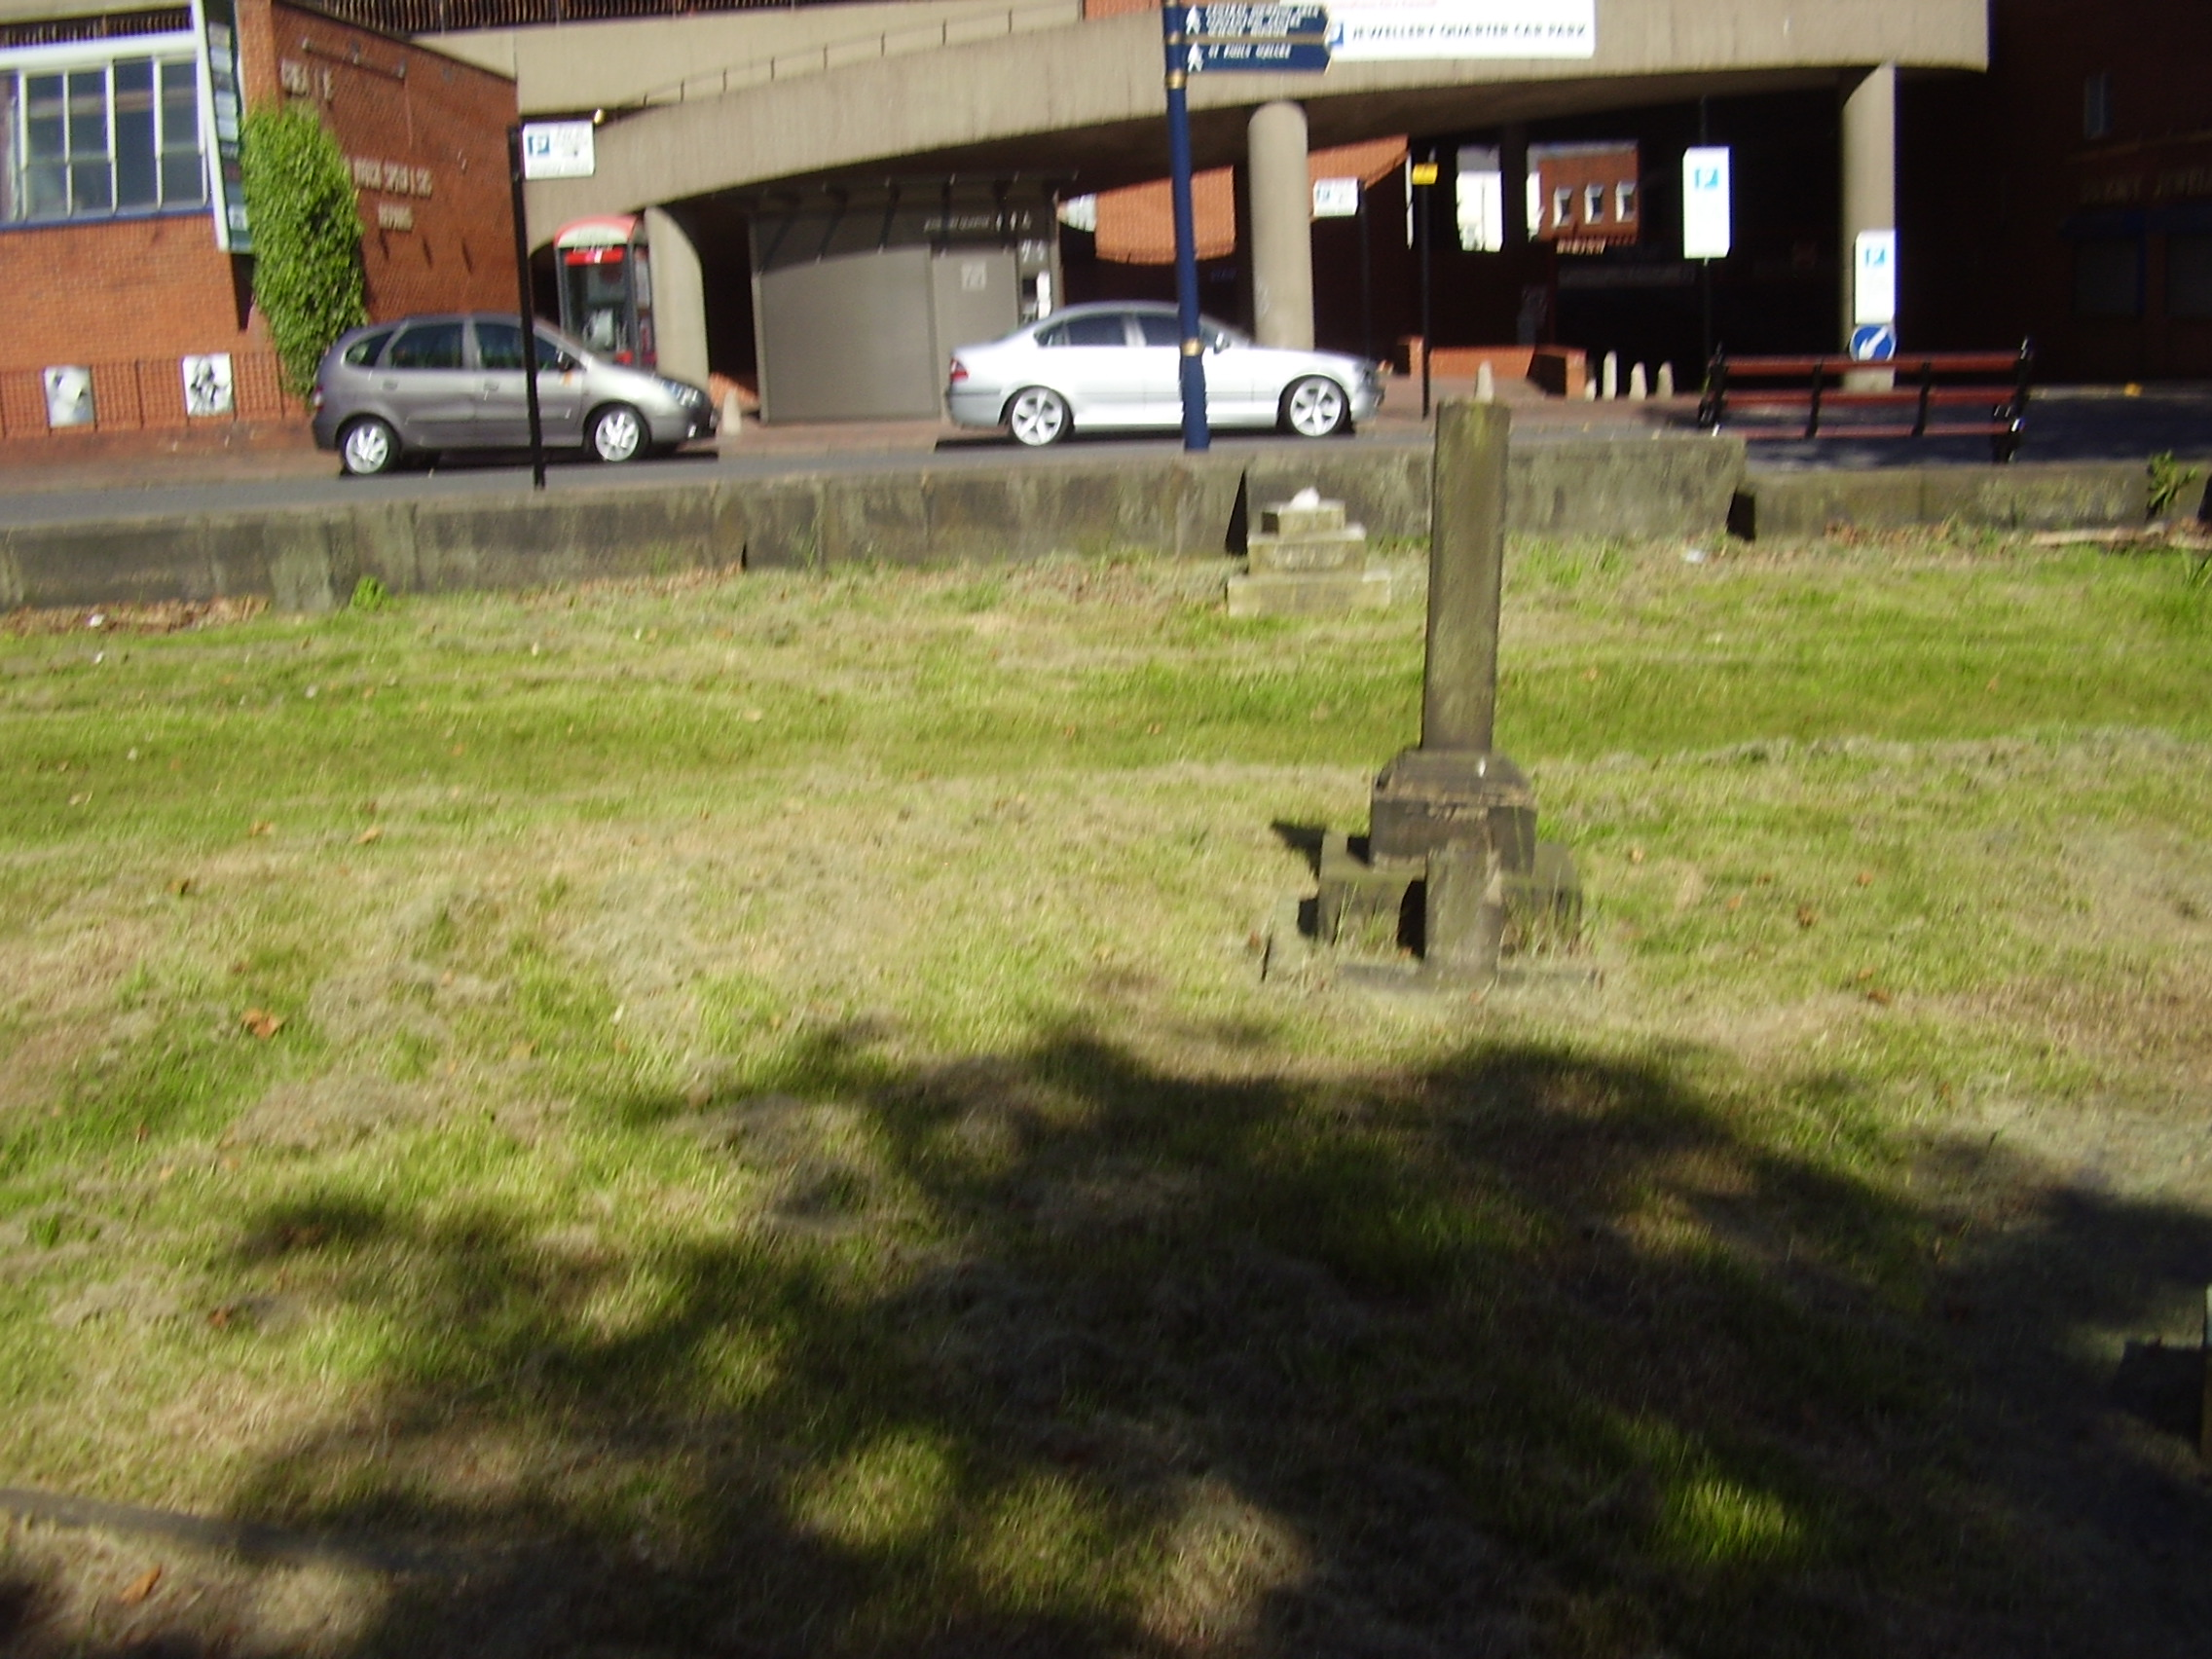 2008 Photograph from inside mint cemetery towads Vyse St, Jewellery Quarter Birmingham